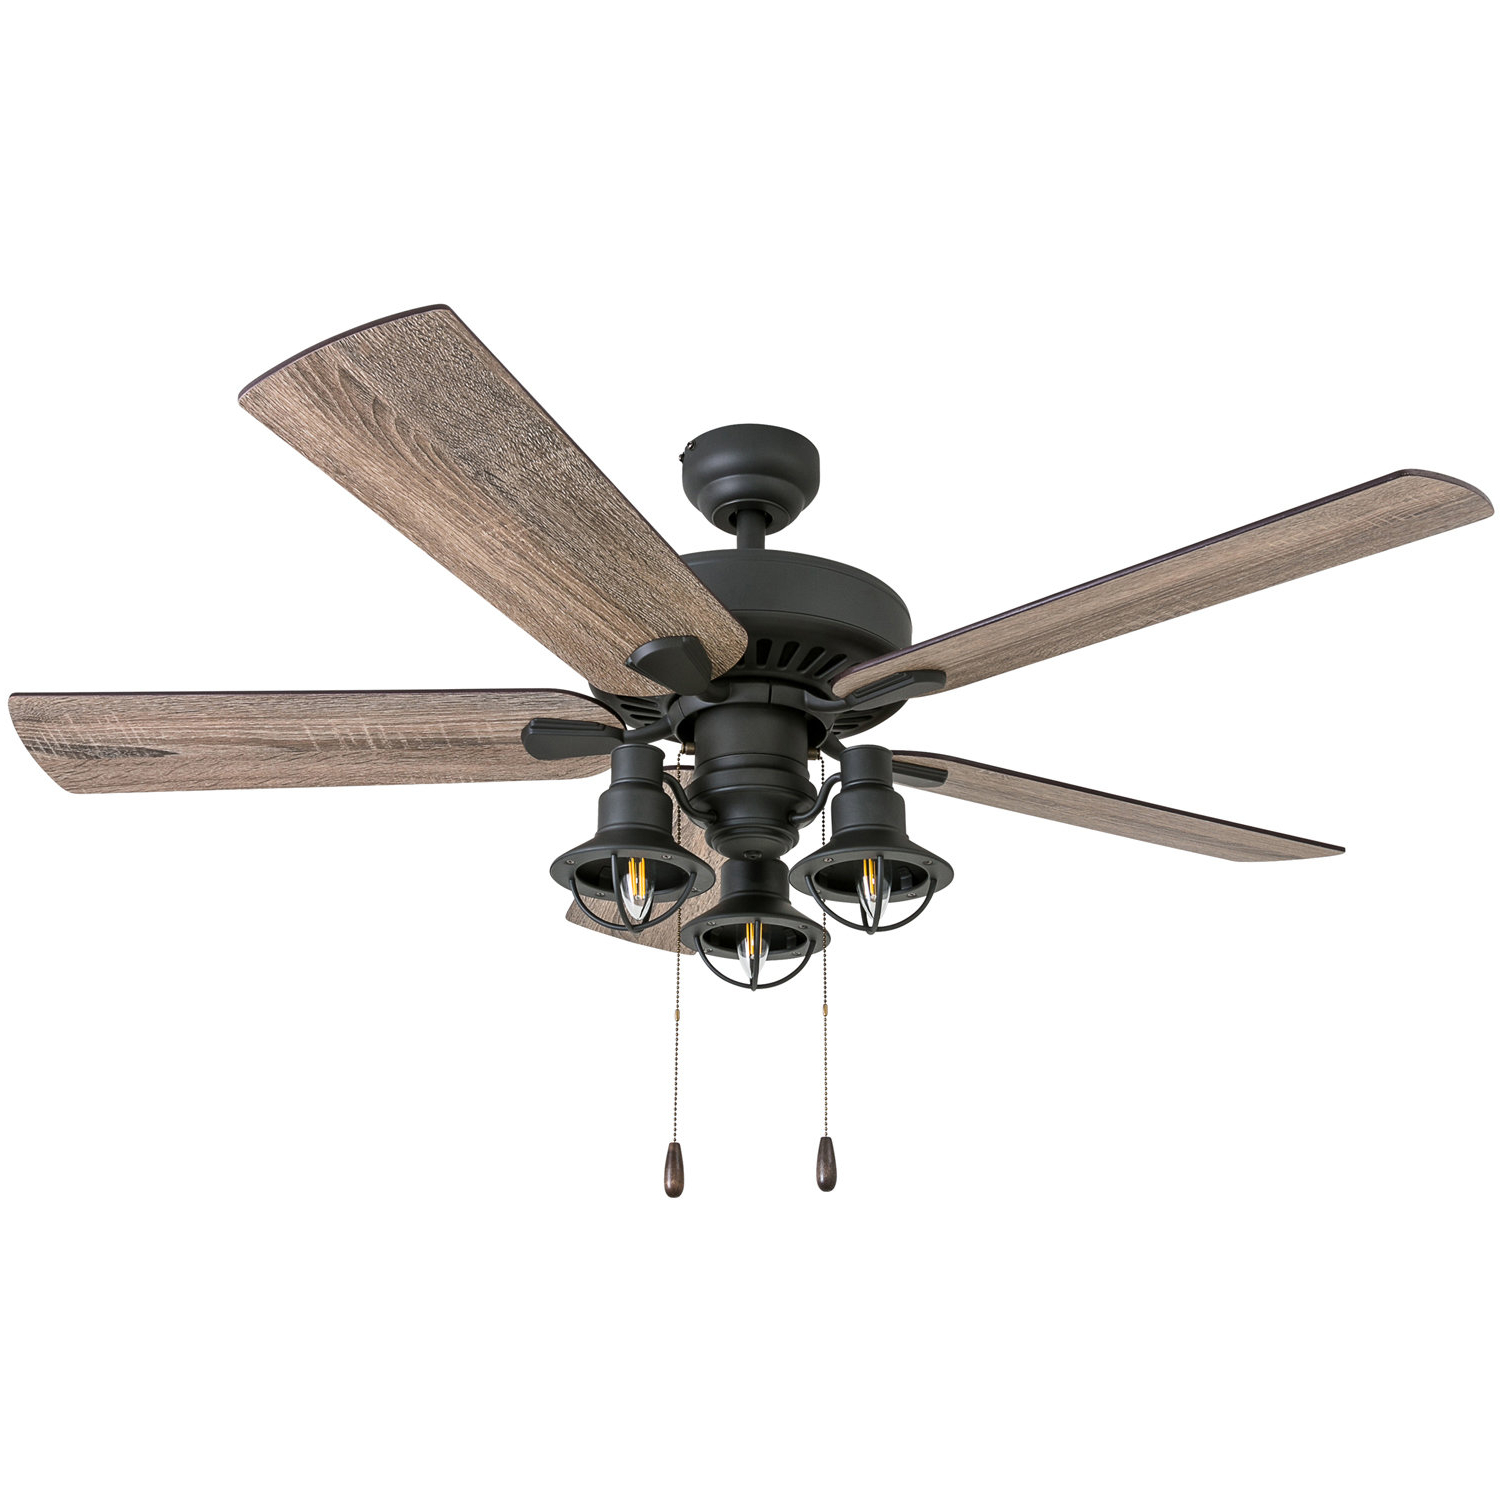 "Ratcliffe 5 Blade Led Ceiling Fans Regarding Trendy 52"" Ravello 5 Blade Led Ceiling Fan, Light Kit Included (View 2 of 20)"